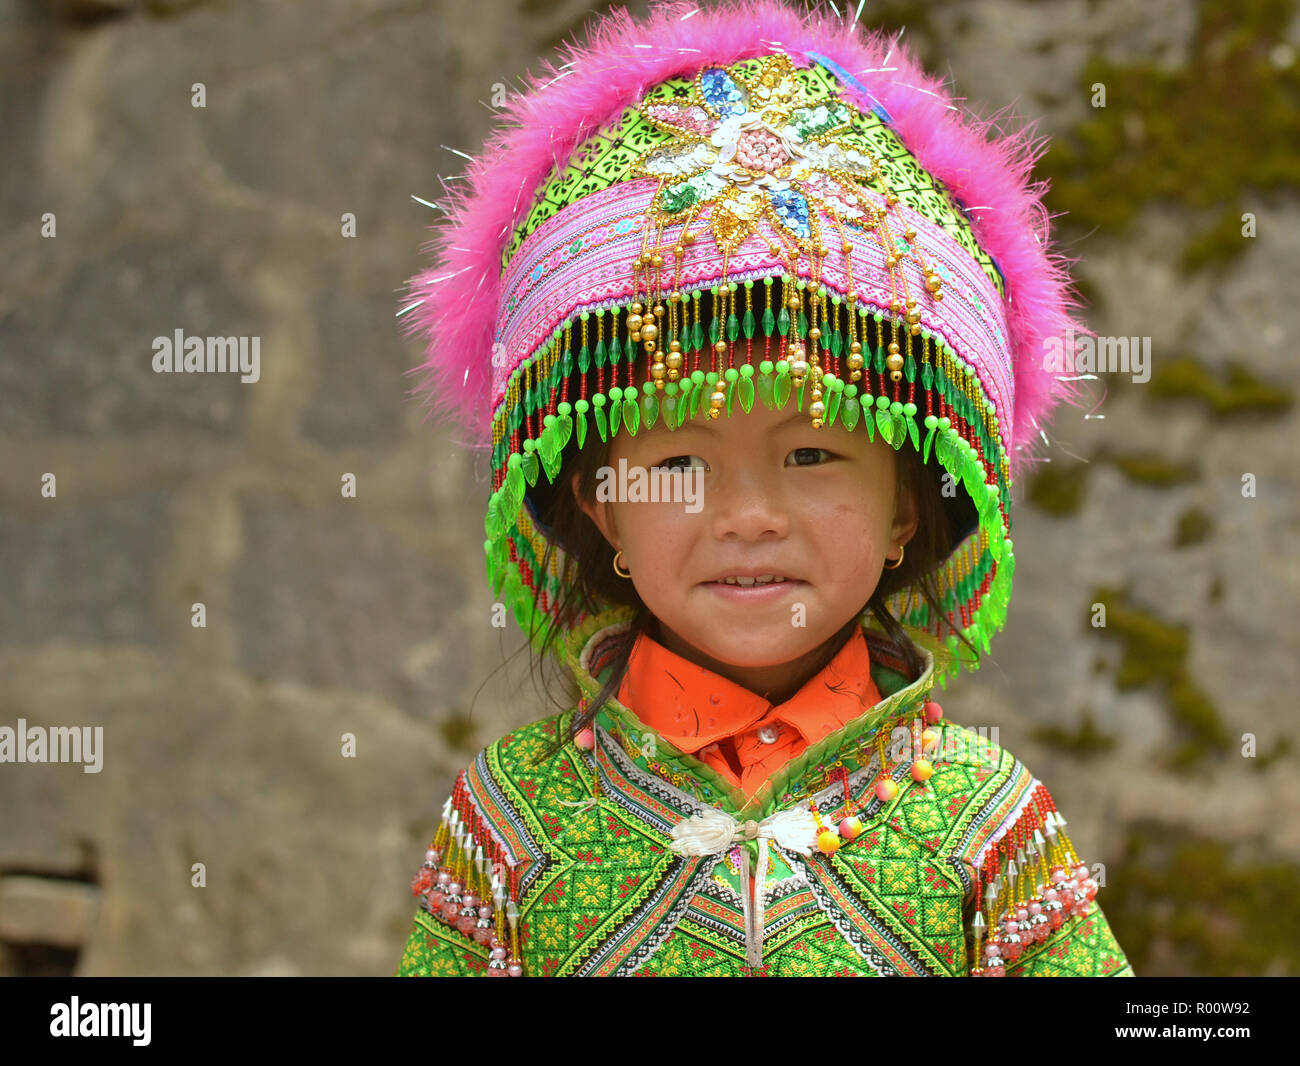 f734a3eed Little Vietnamese Flower H'mong boy with an oversized traditional  Miao/H'mong